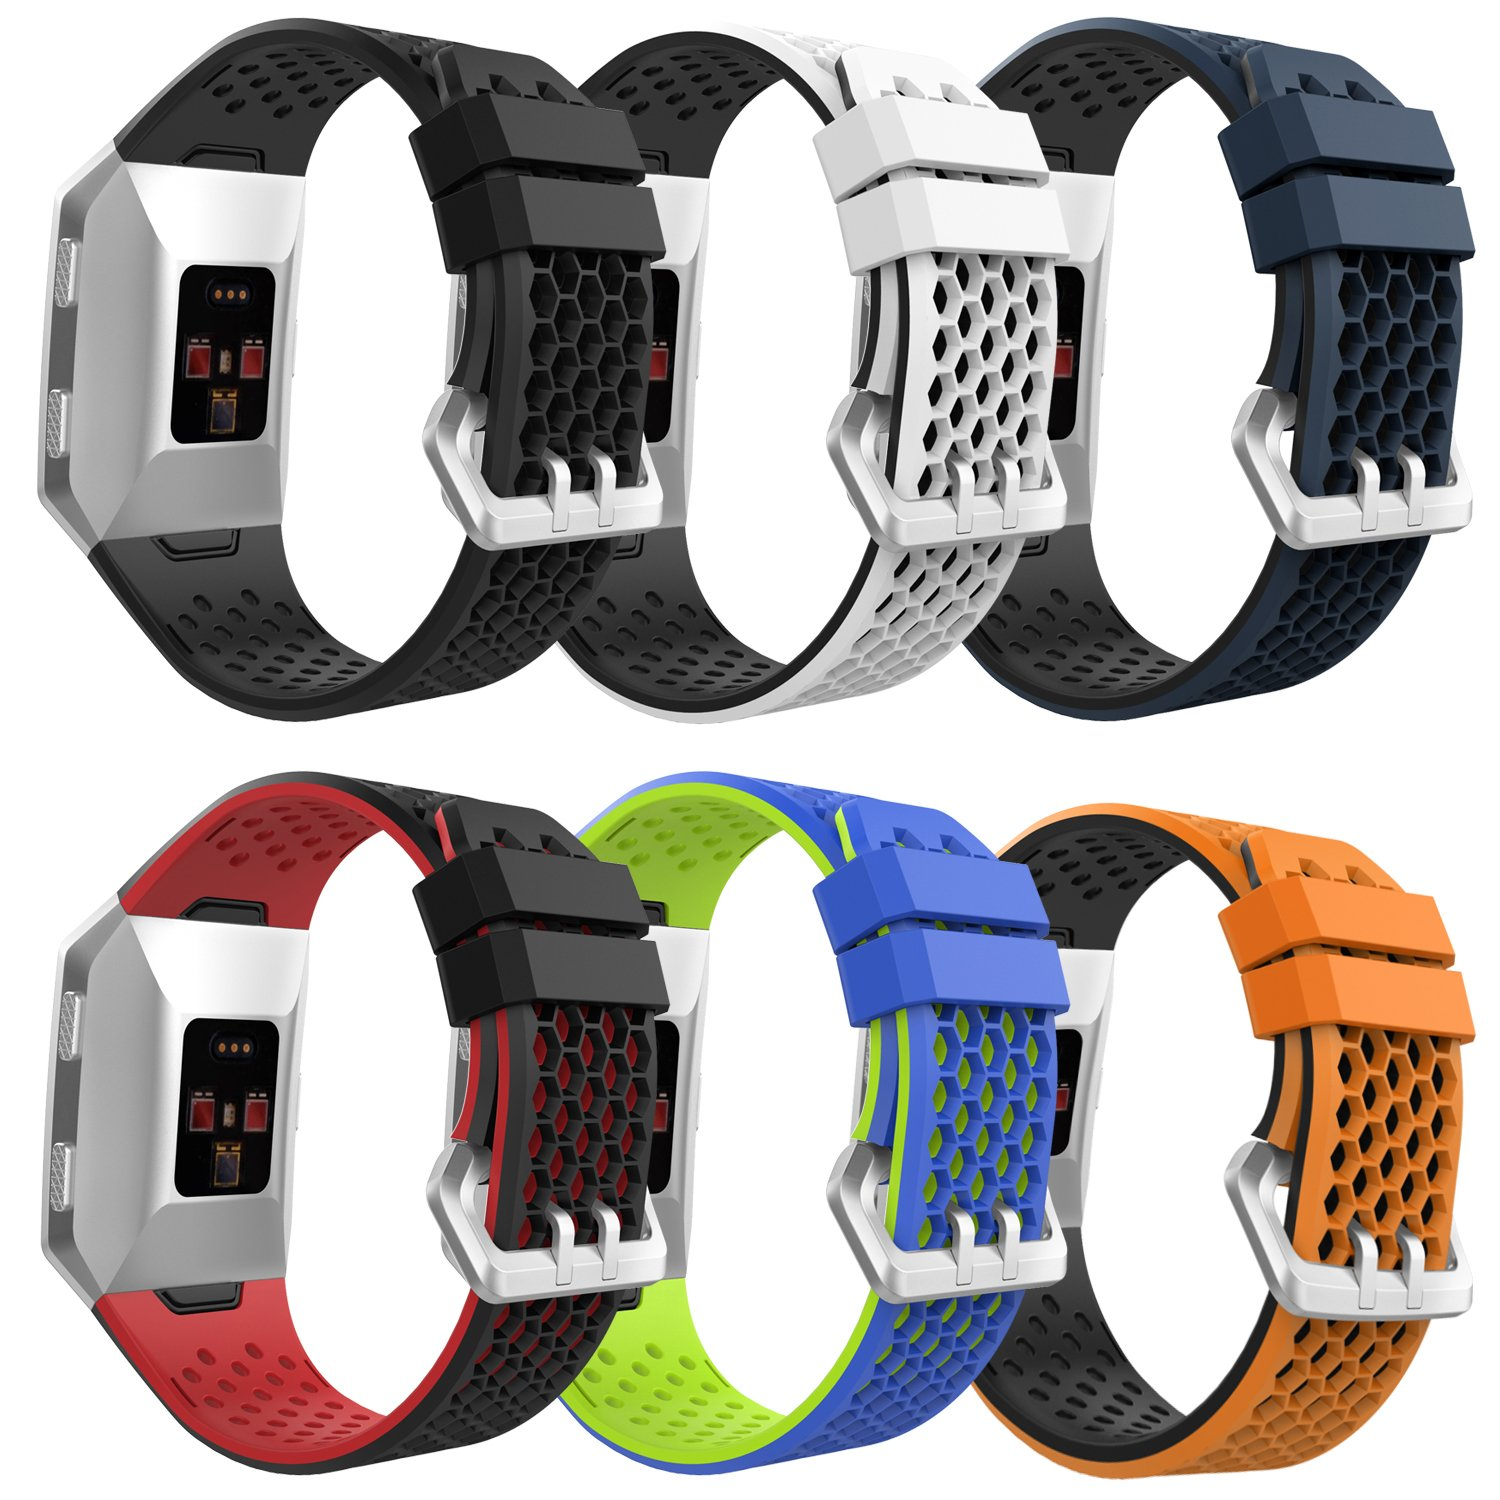 MoKo Fitbit Ionic Watch Band, [6 Pack] Colorful Soft Silicone Perforated Adjustable Strap for Fitbit Ionic Smart Watch, Large Size 5.12''-9.05'' (130mm-230mm), 6PCS (Multi-Colors) by MoKo